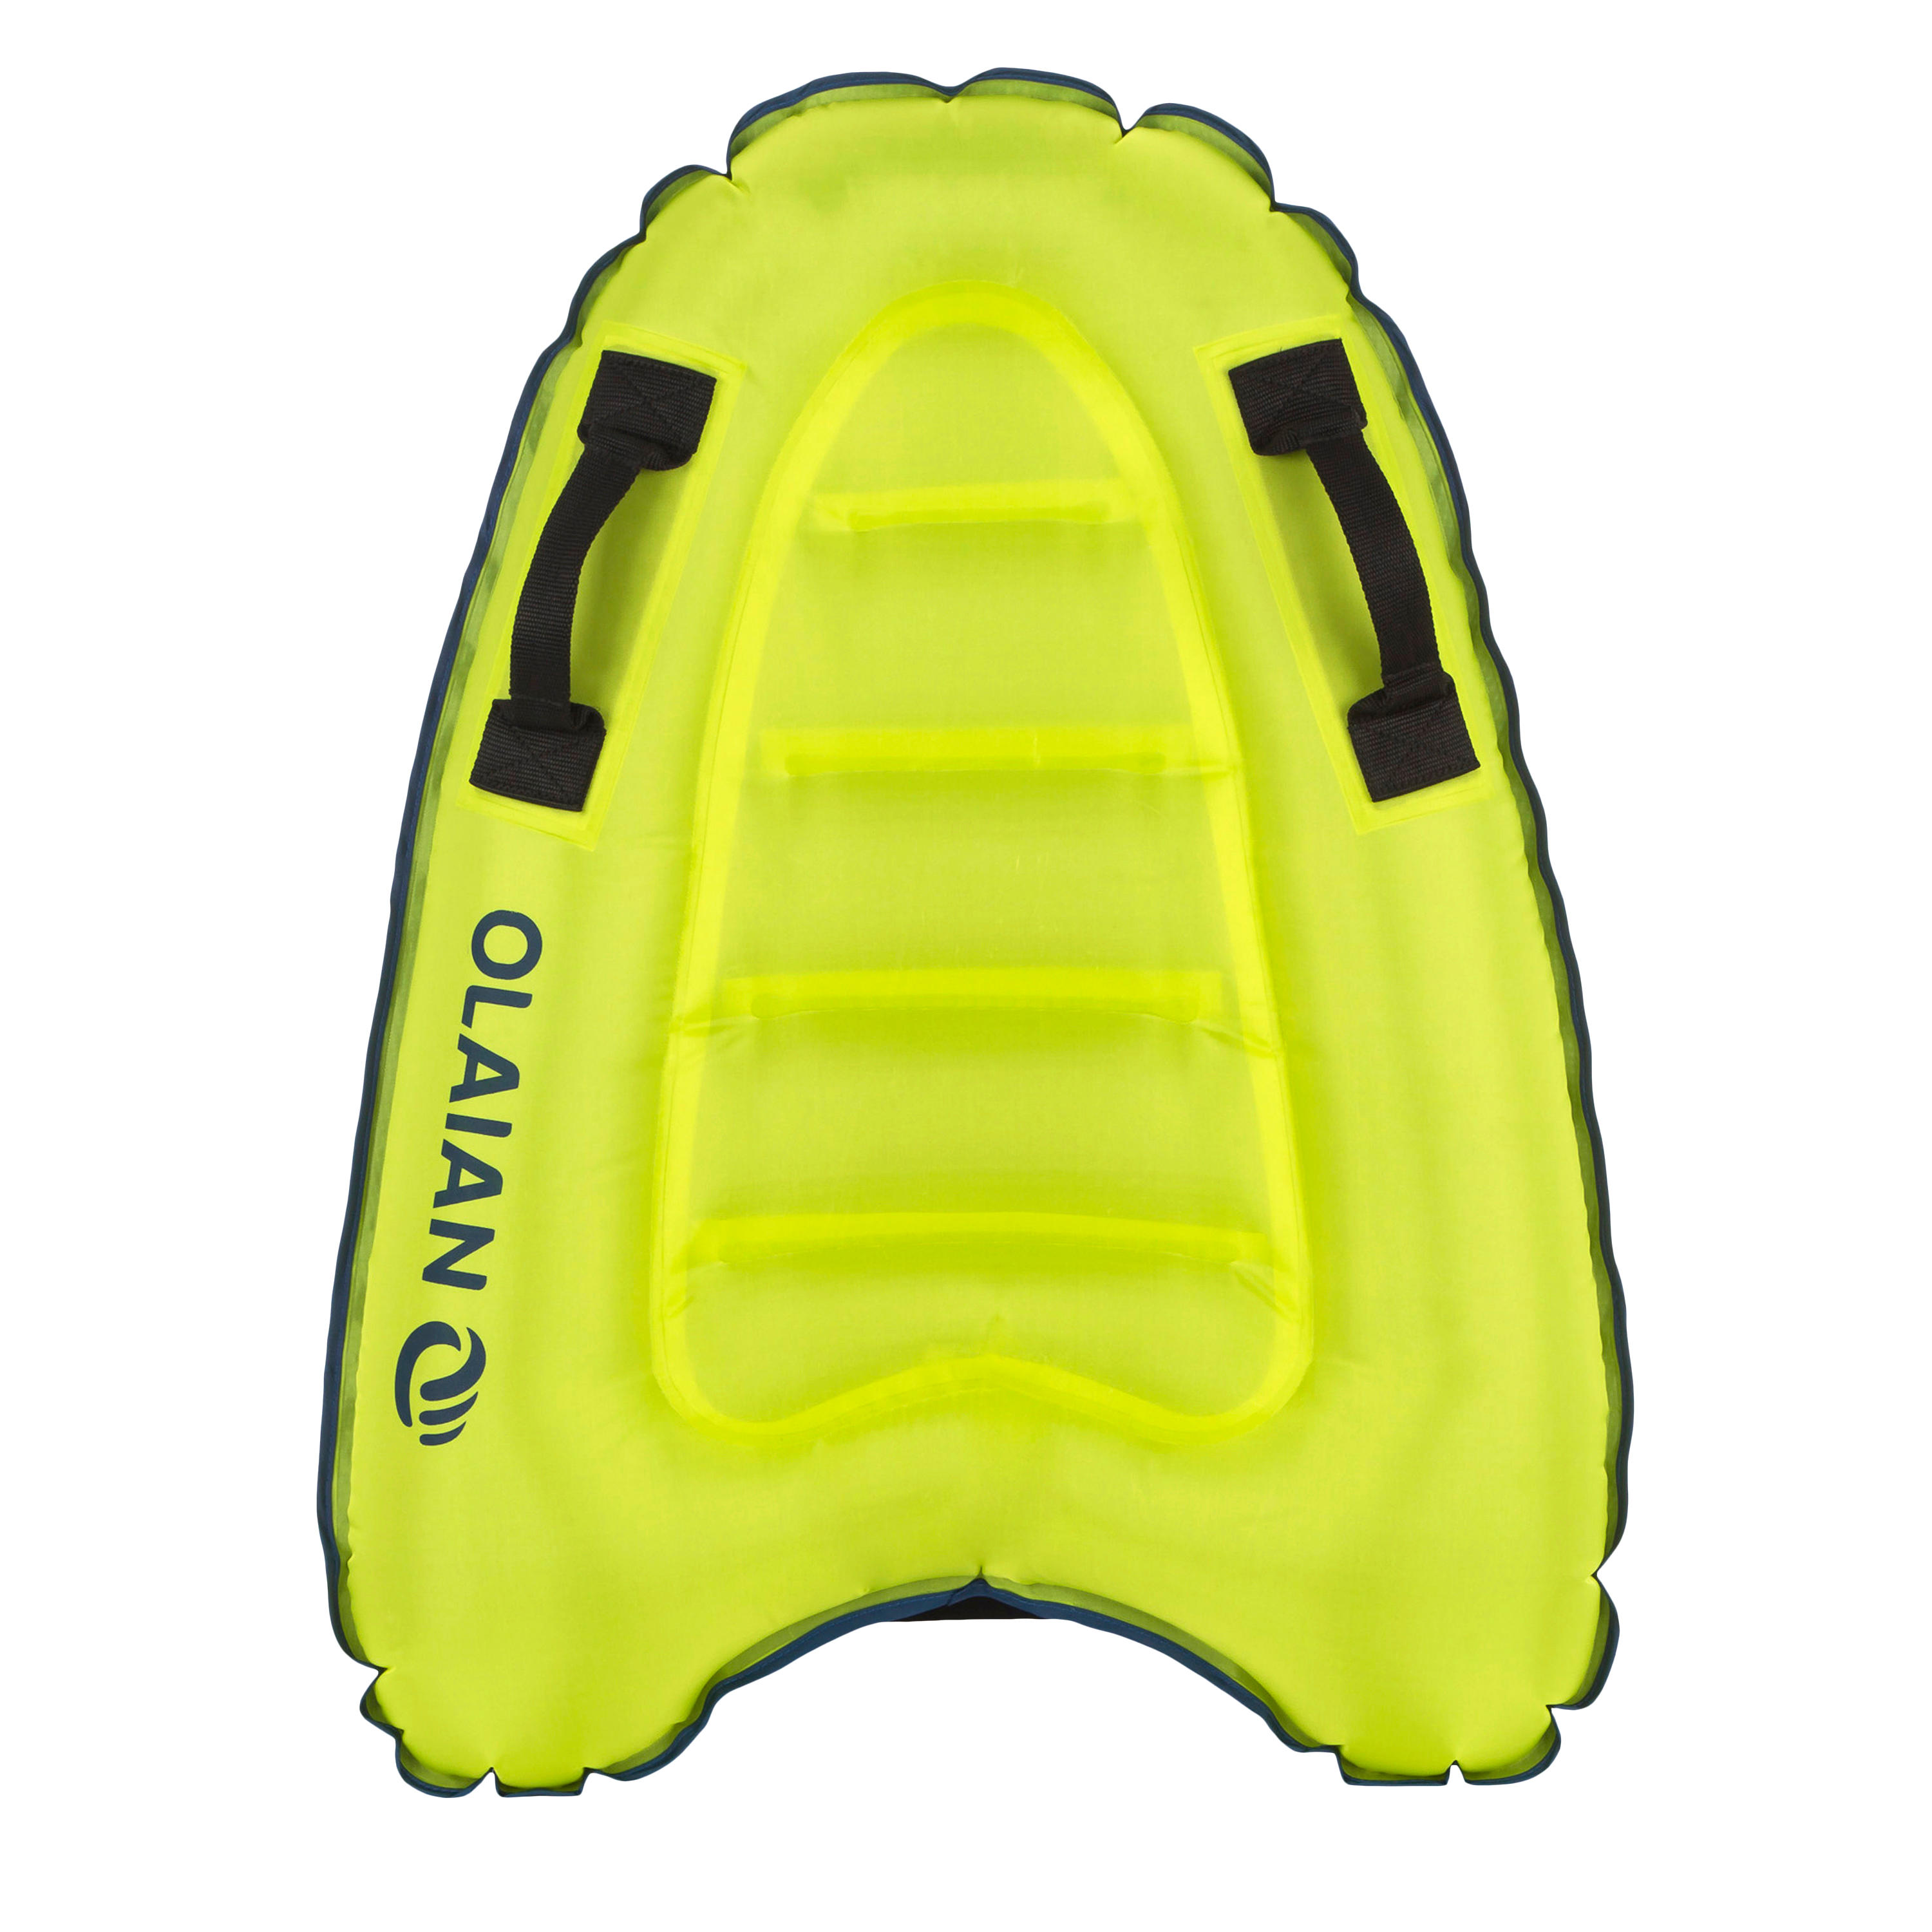 Bodyboard inflable discovery Kid verde